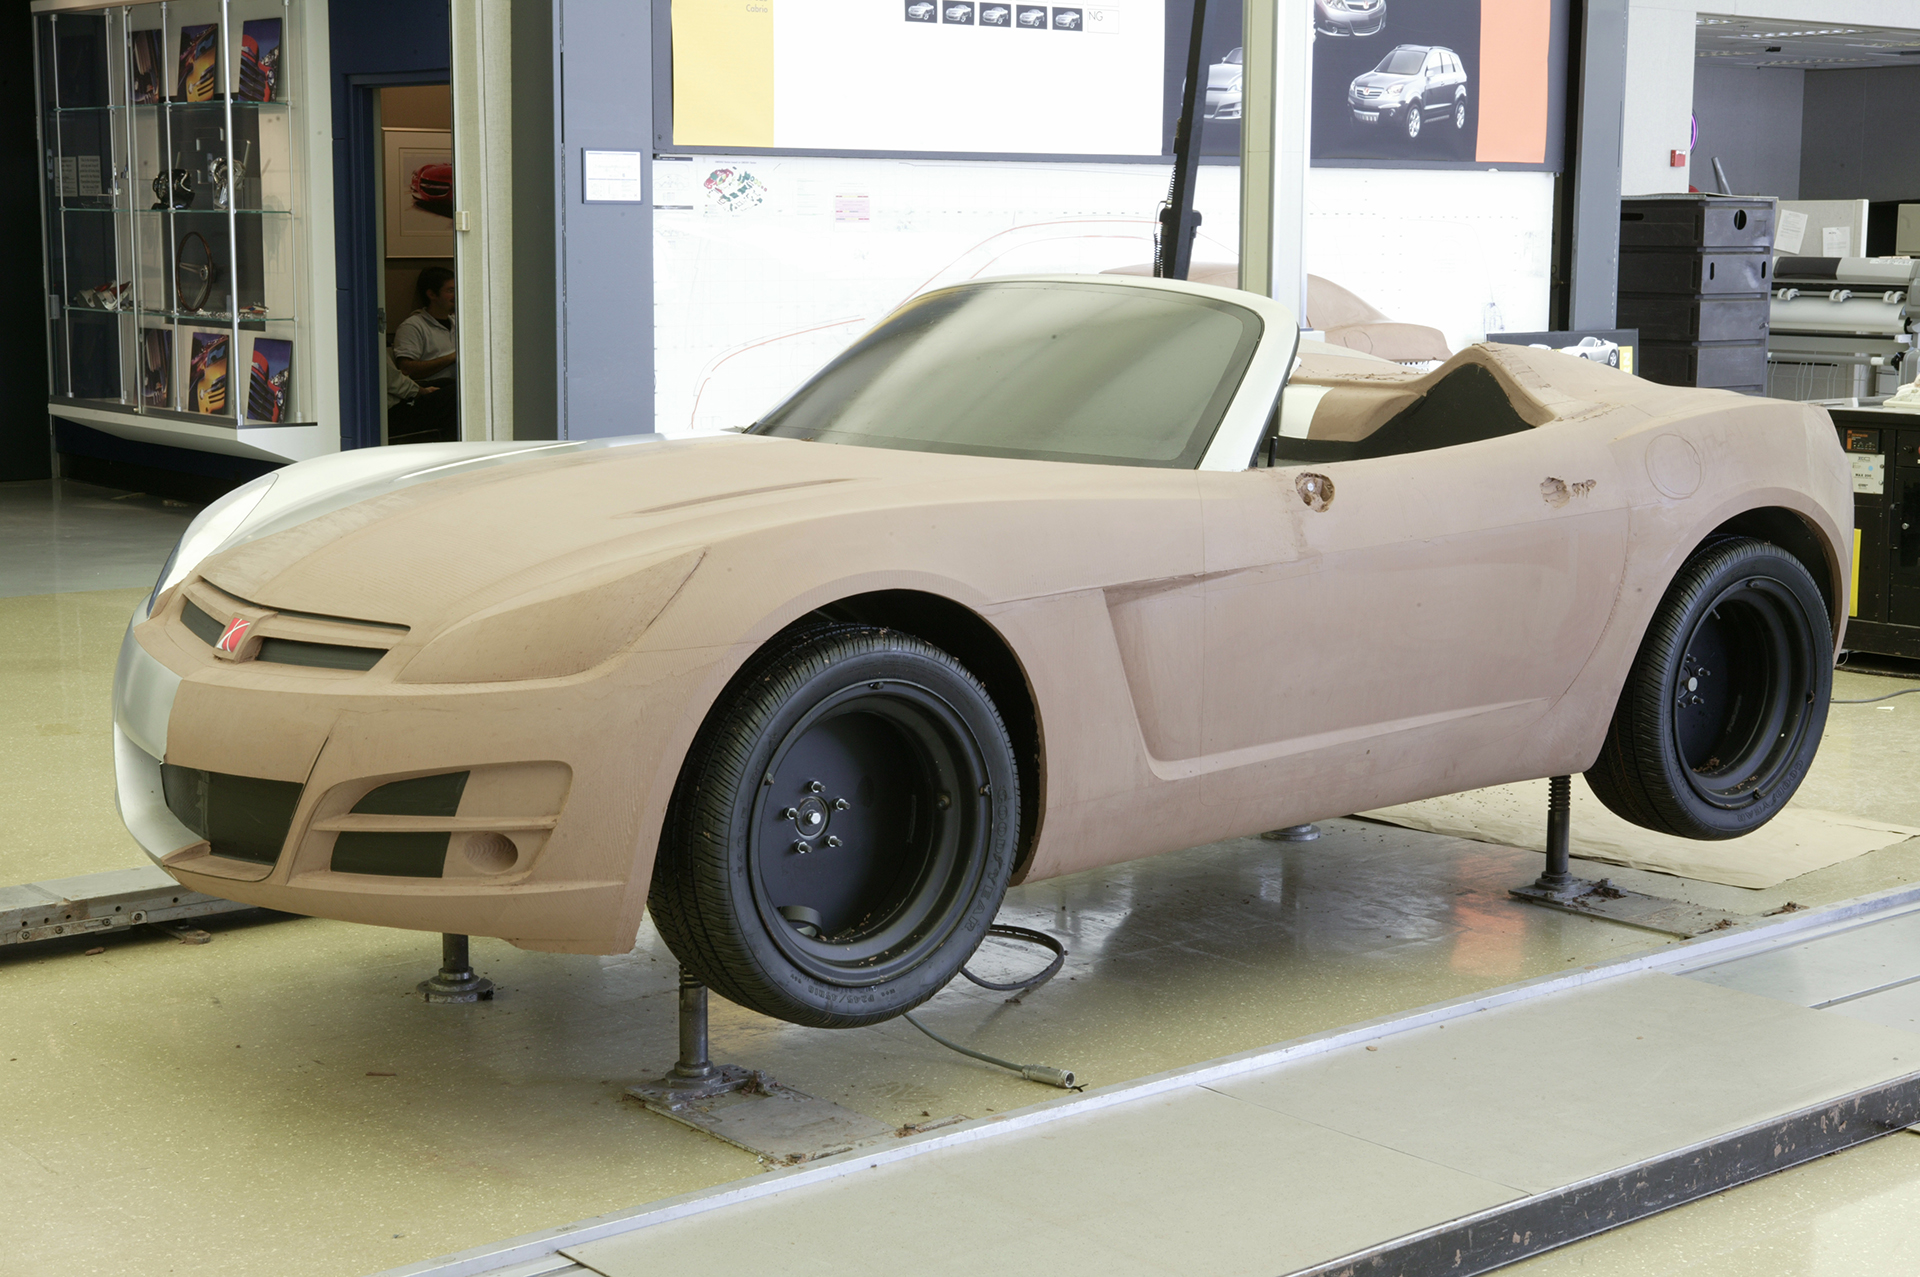 saturn sky clay model on stands